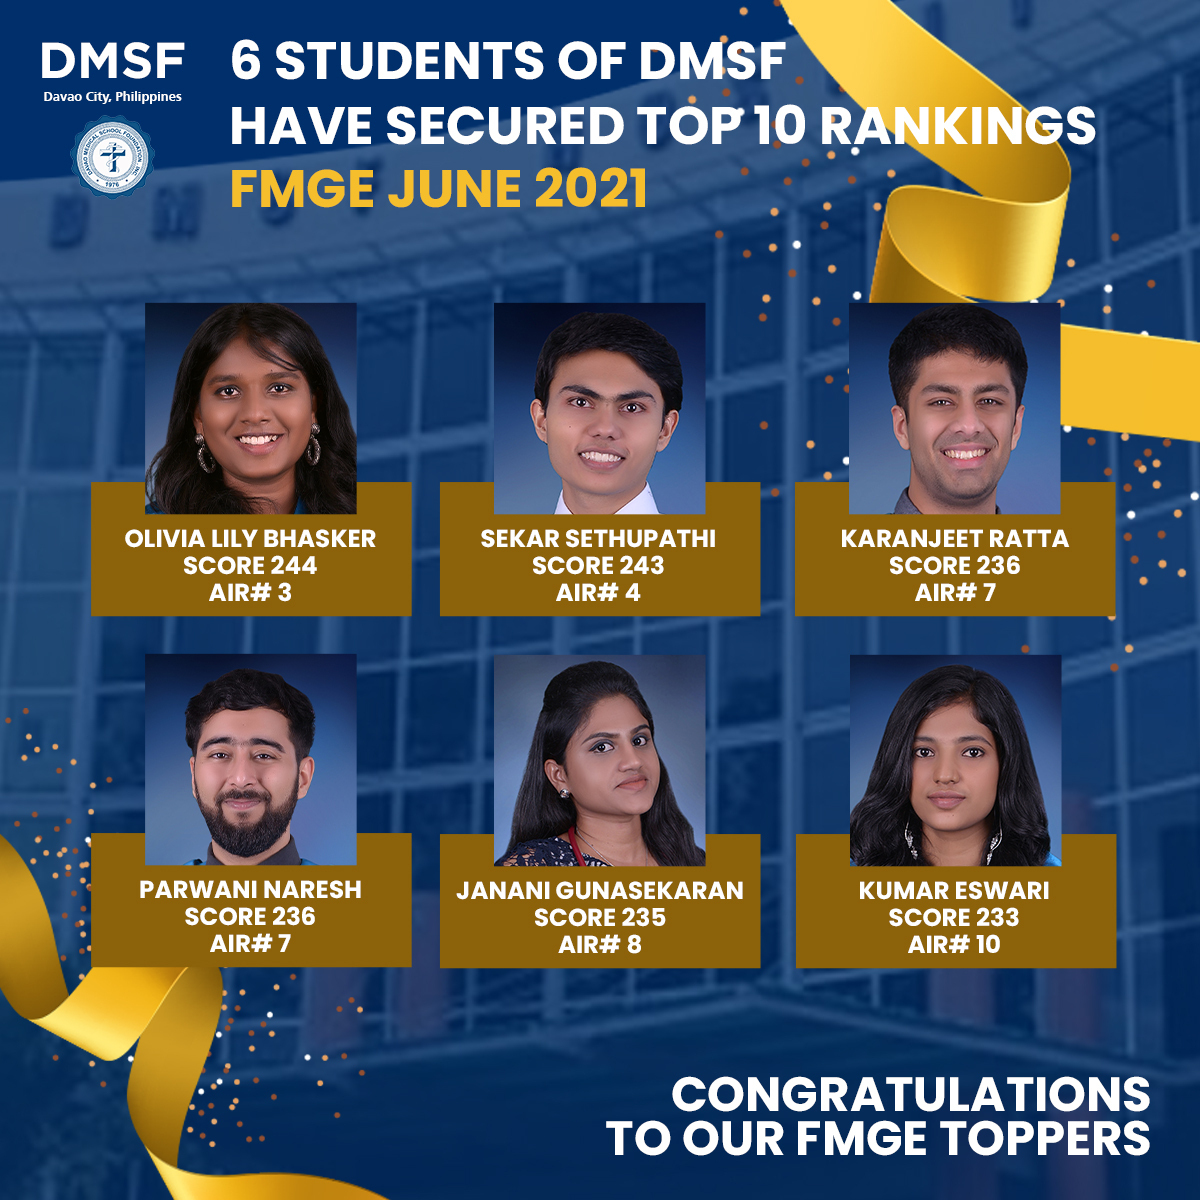 DMSF's six toppers at FMGE June 2021